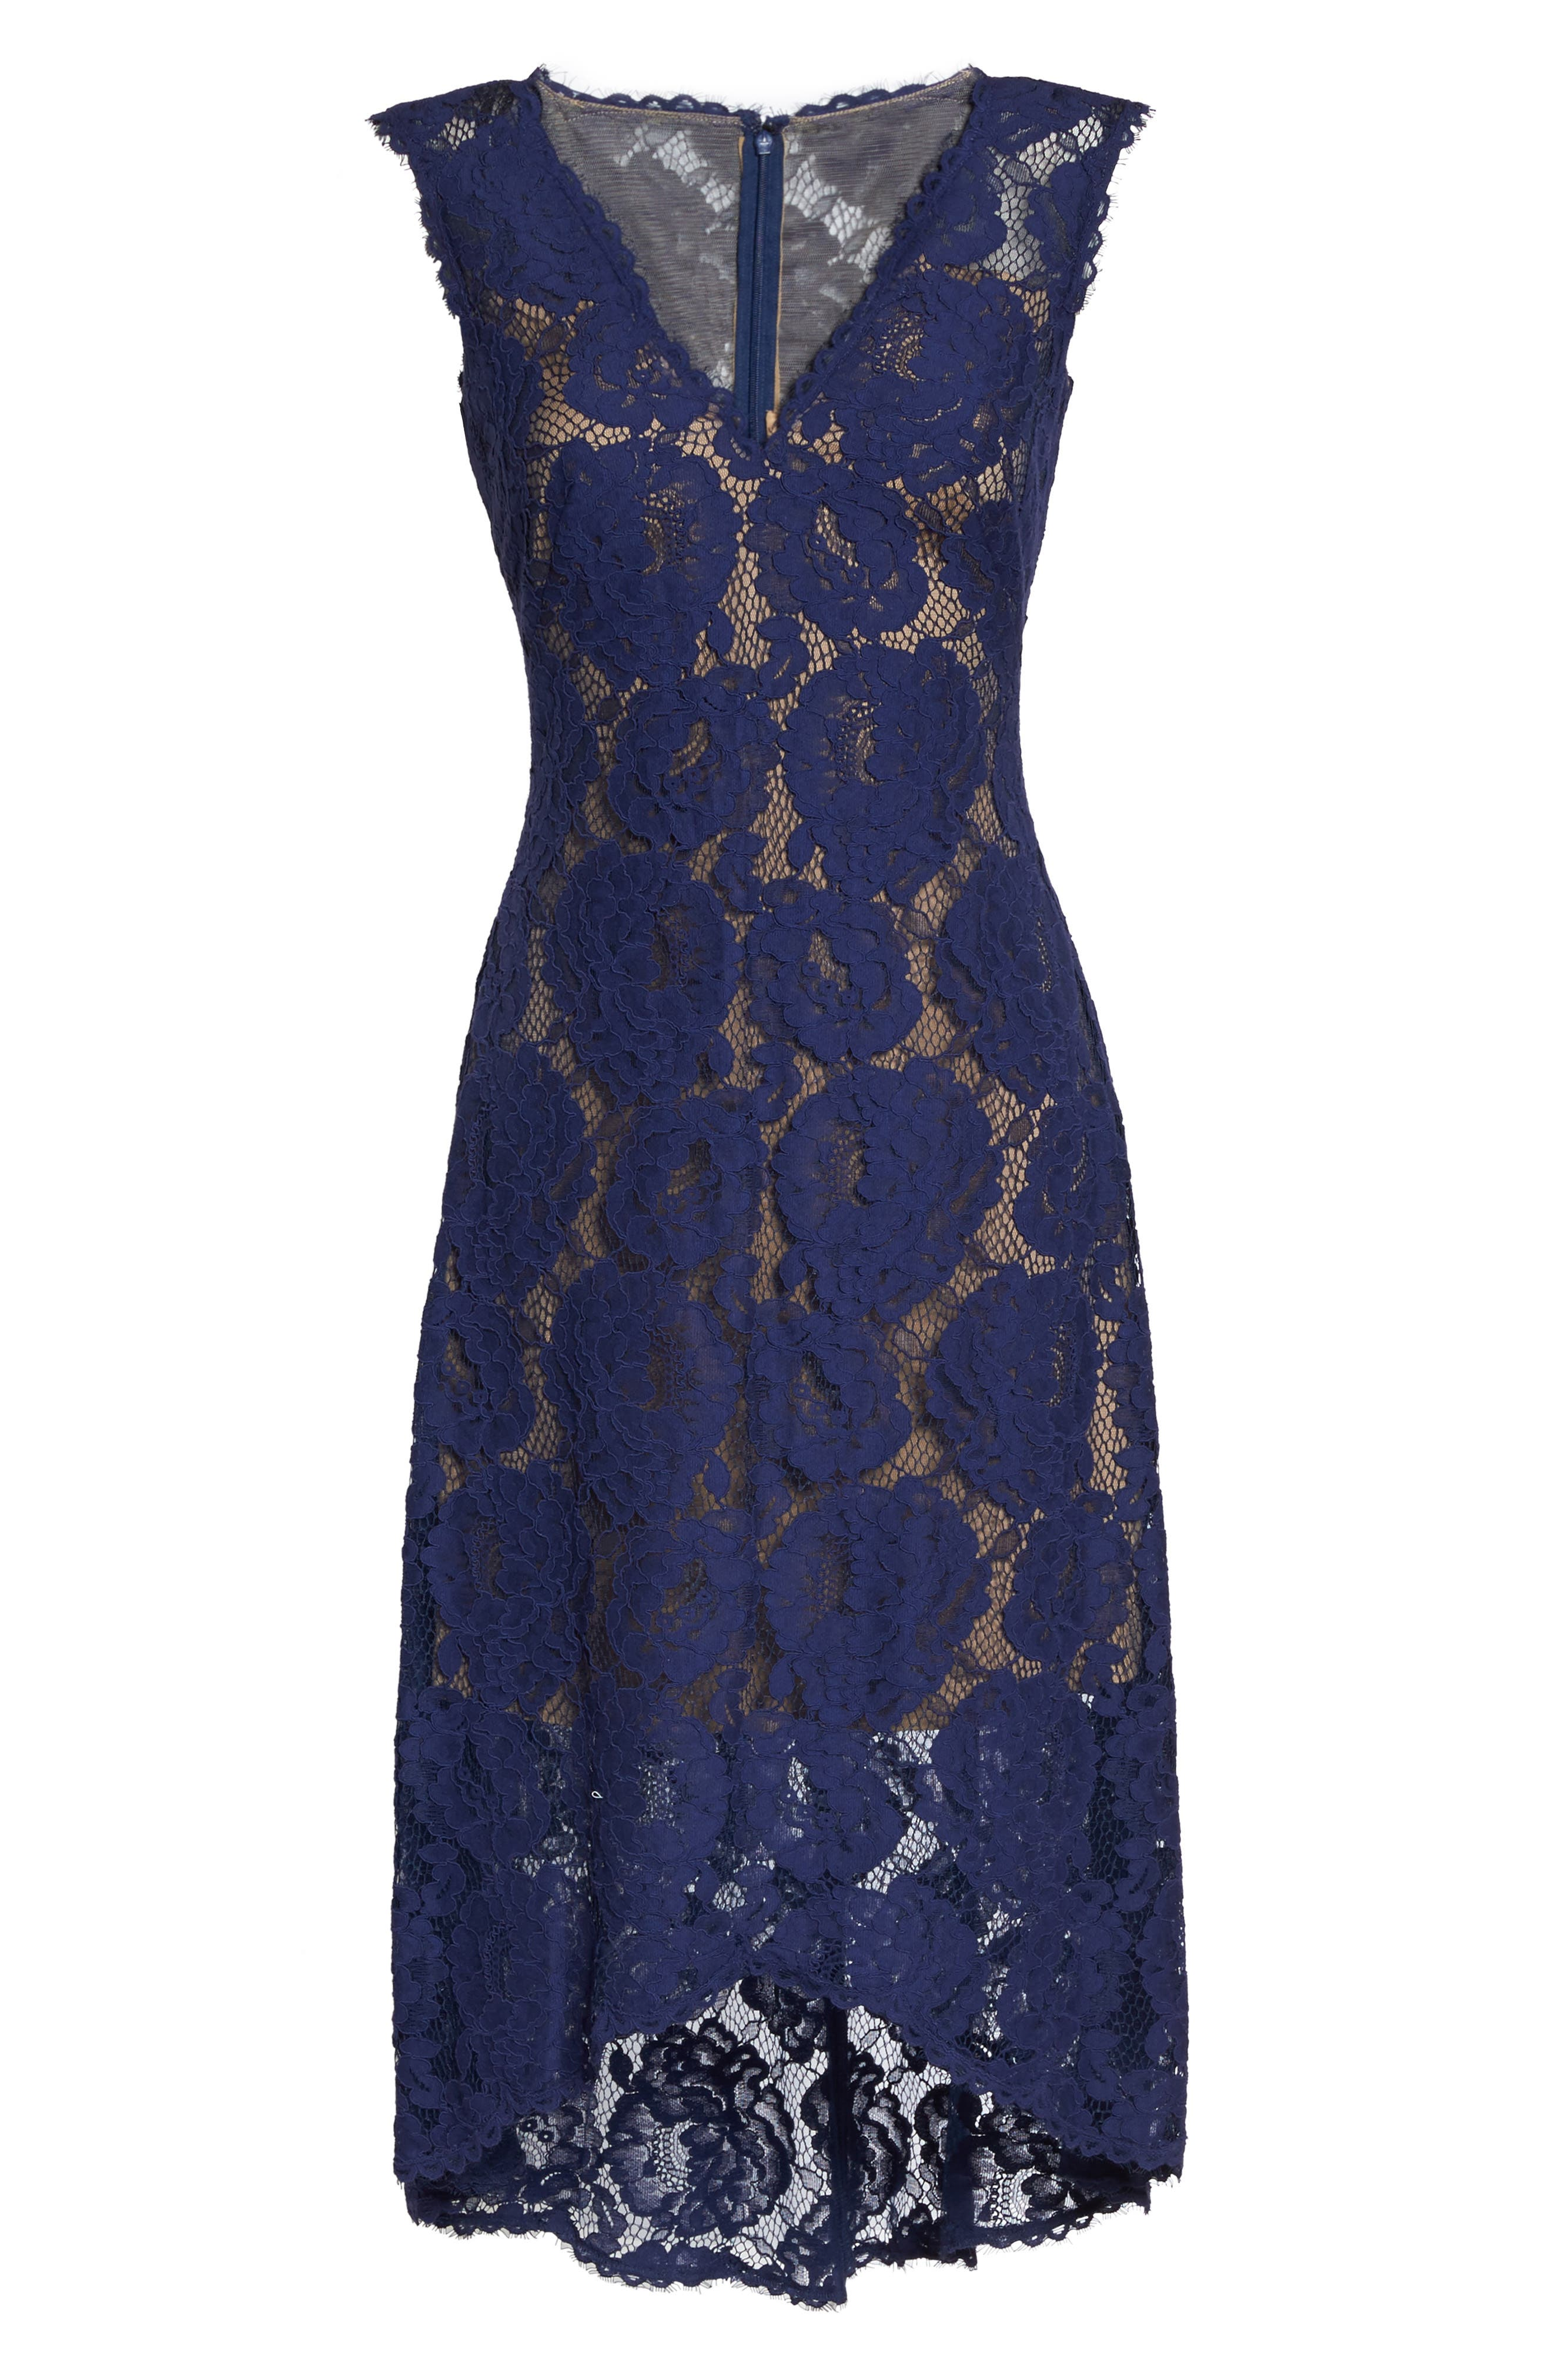 TADASHI SHOJI,                             High/Low Lace Dress,                             Alternate thumbnail 6, color,                             420